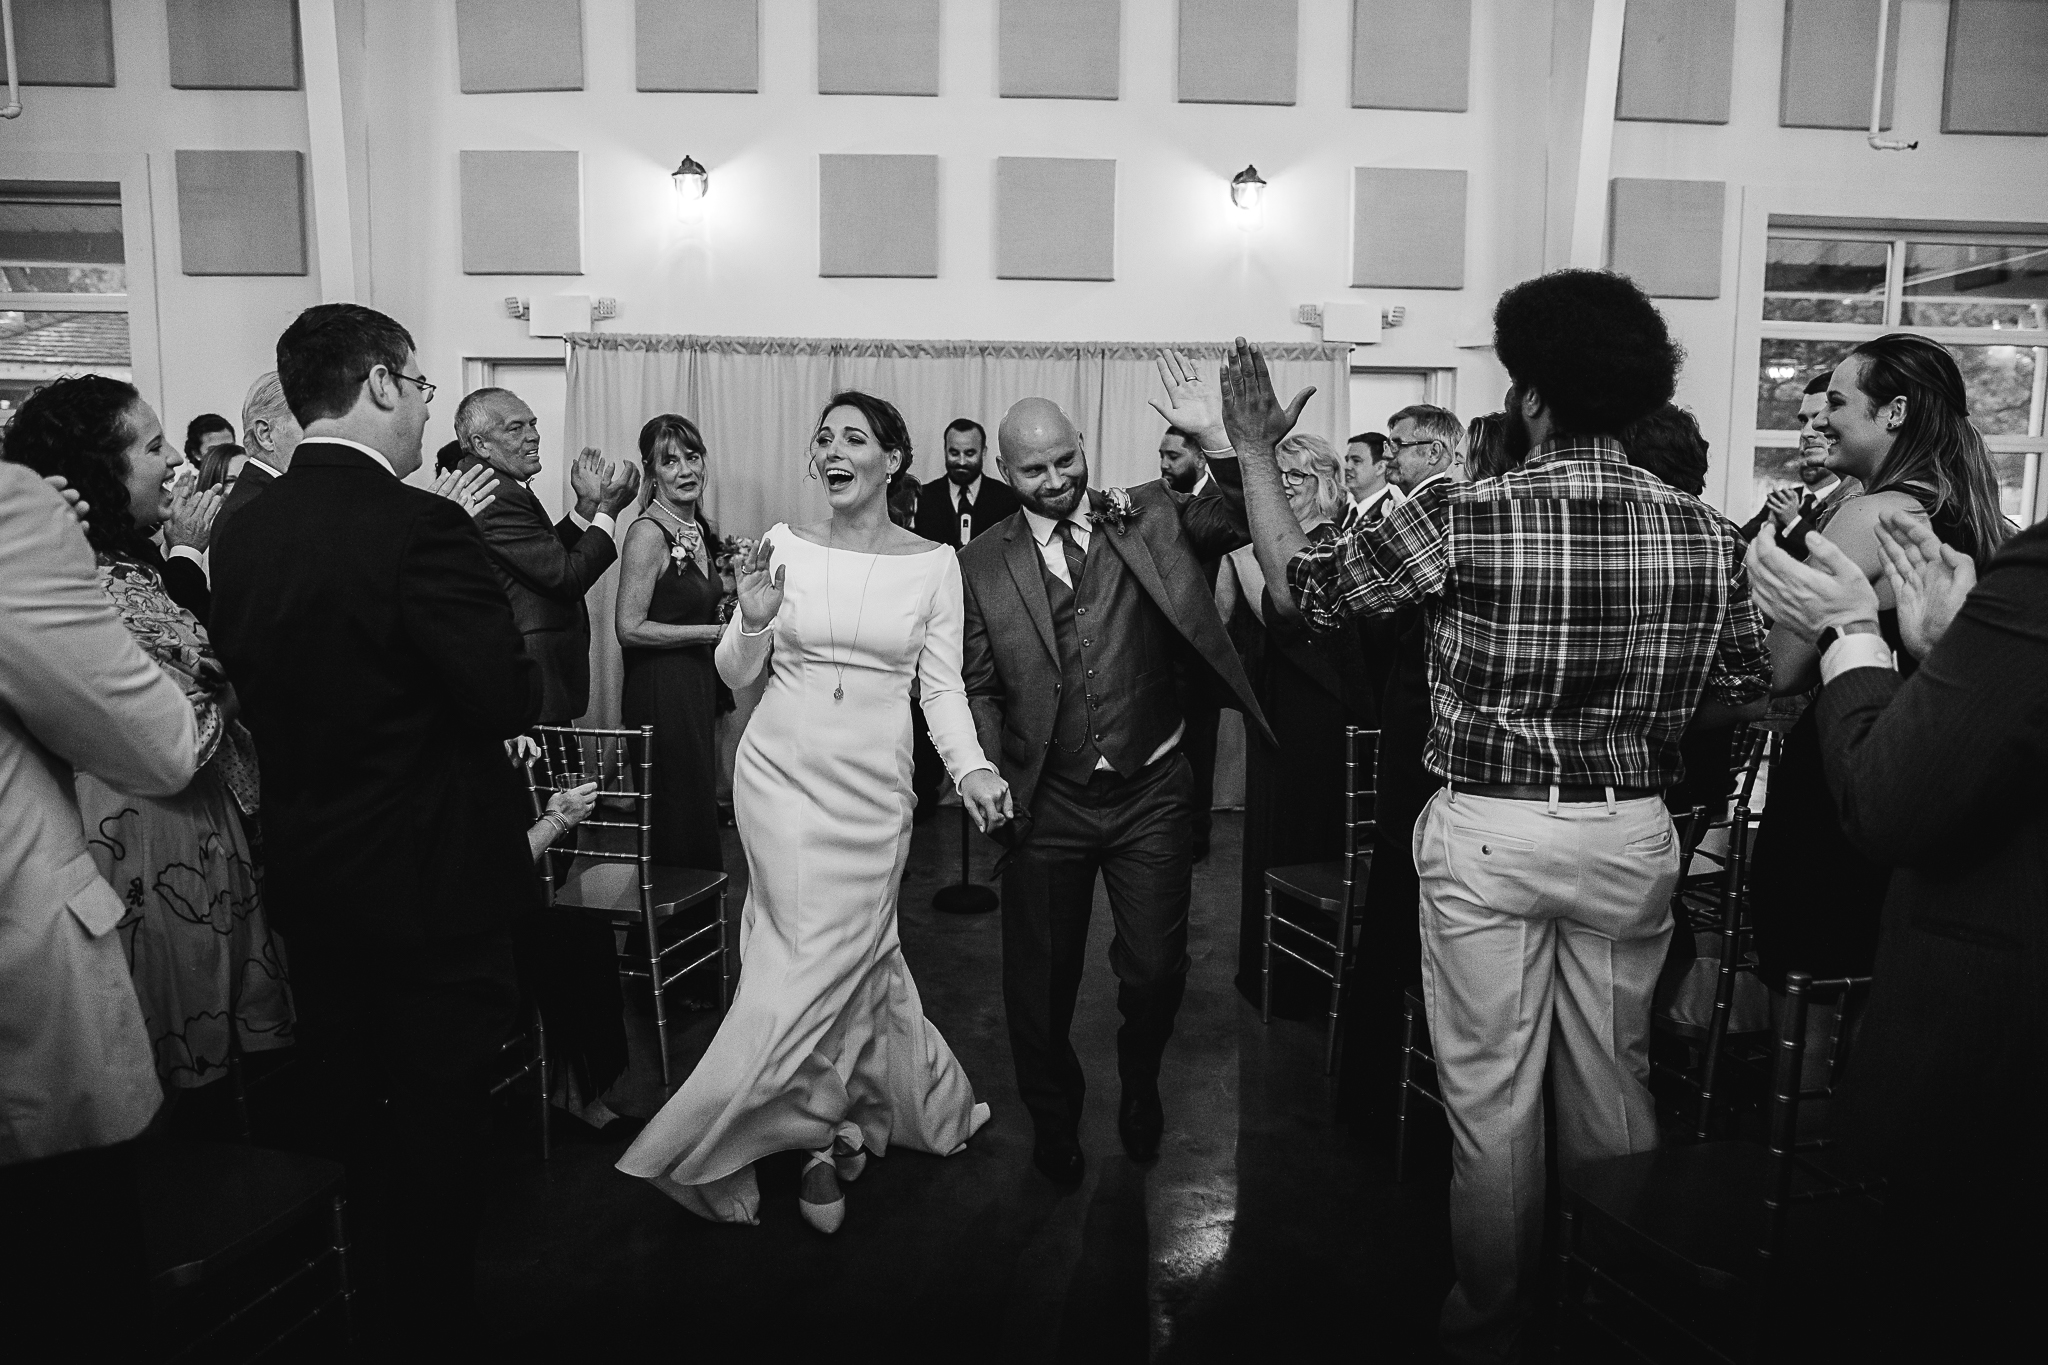 Caitlin-and-Bryan-Avon-Acres-Memphis-TN-Wedding-177.jpg